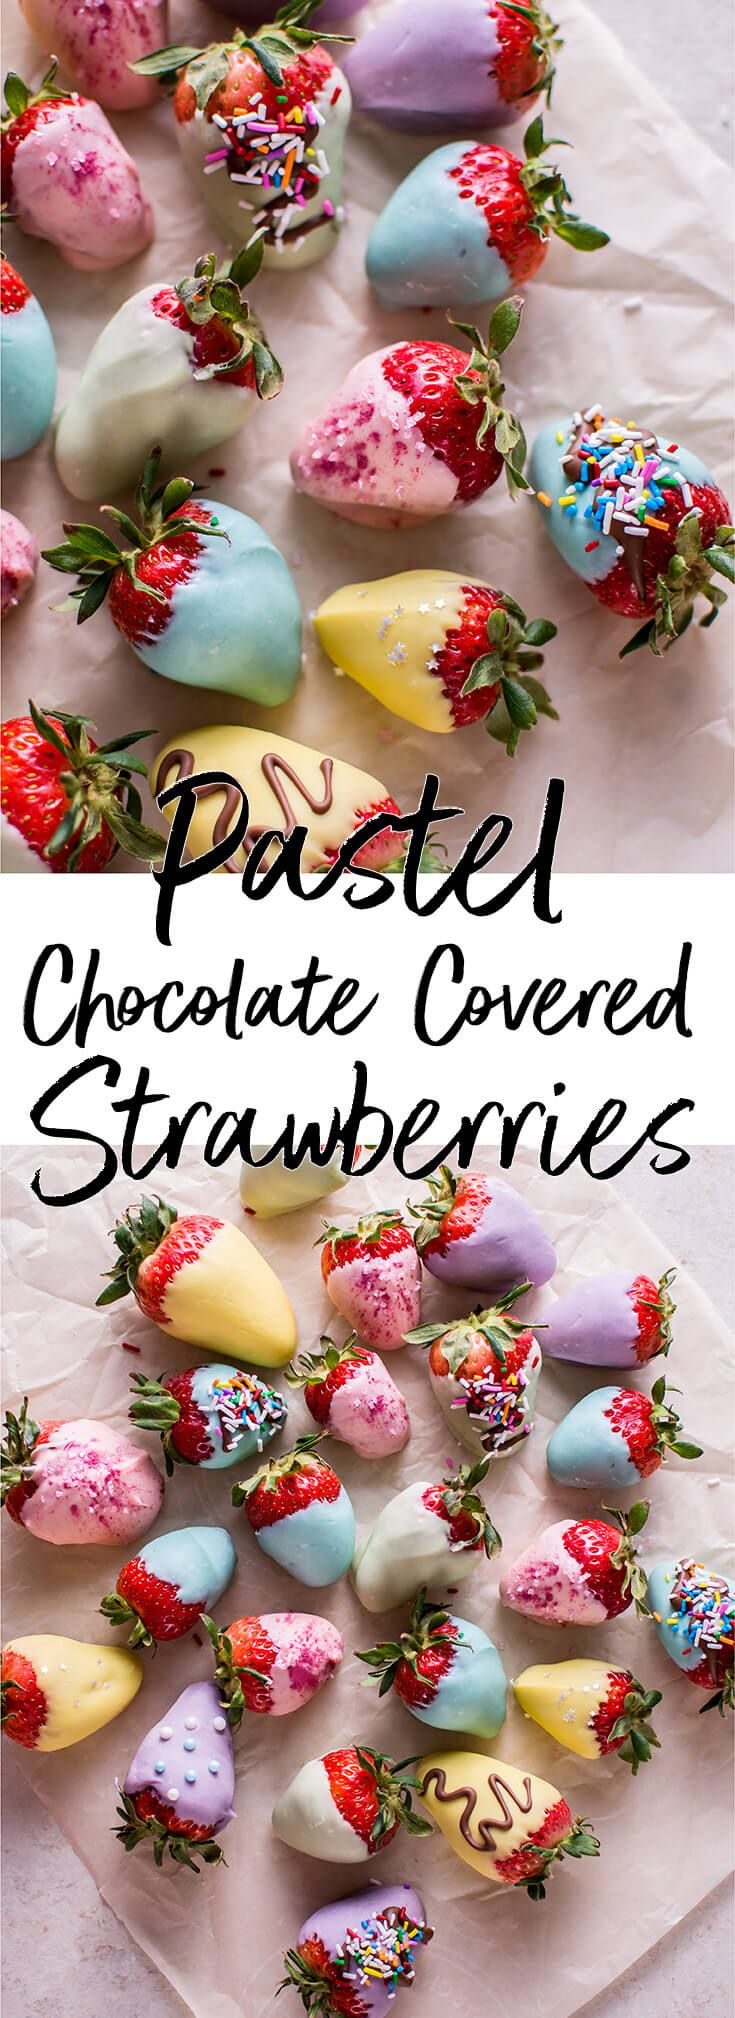 My Easter pastel-colored chocolate covered strawberries are an easy and fun sweet treat that adults and kids will love.